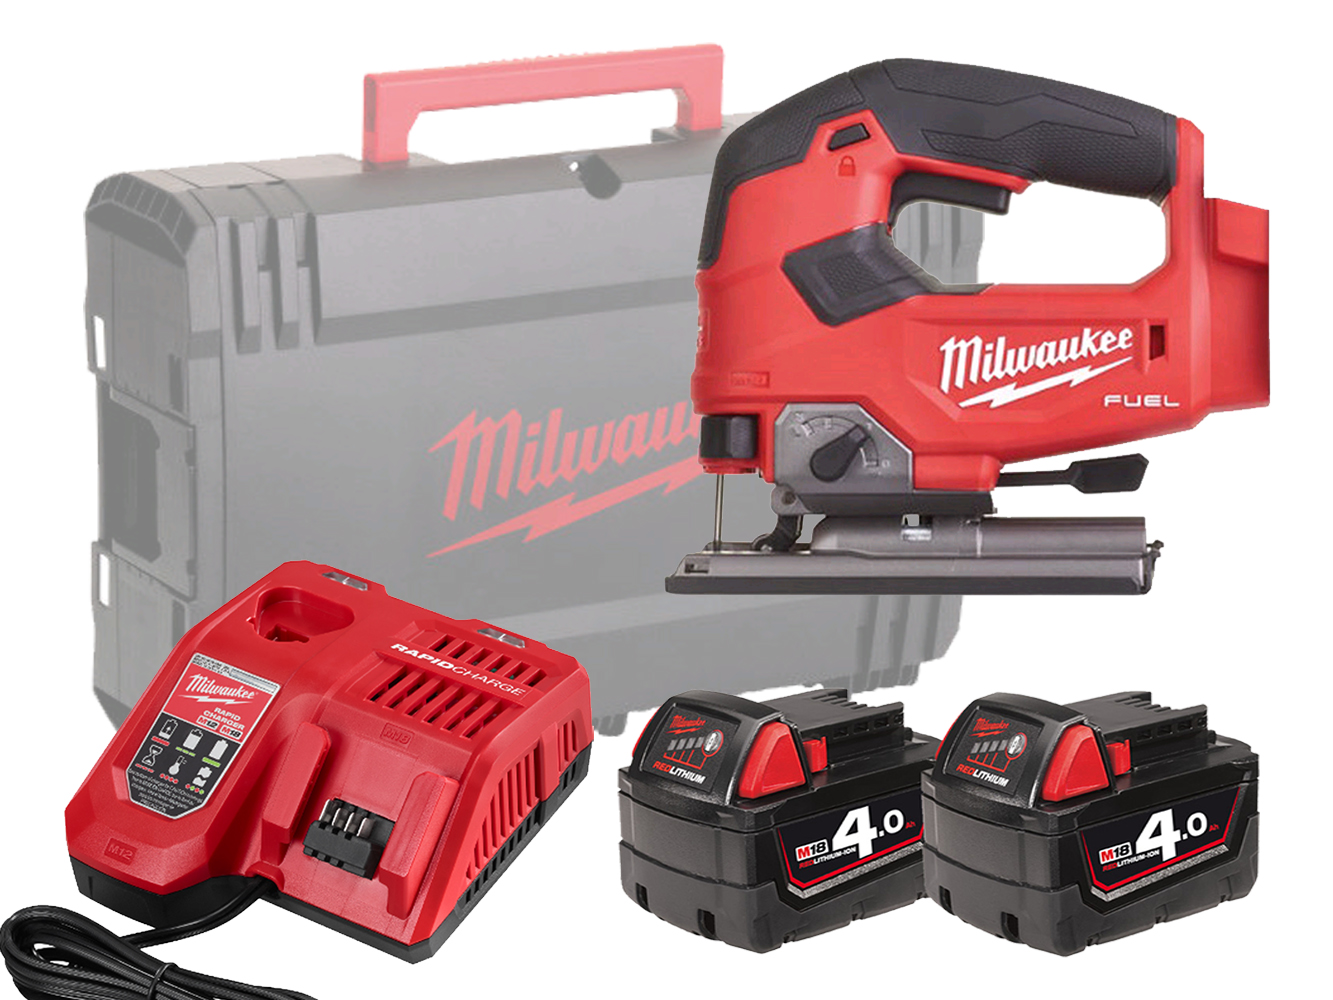 Milwaukee M18FJS 18V FUEL Jigsaw with Top-Handle and 5 Stage Pendulum Action - 4.0ah Pack